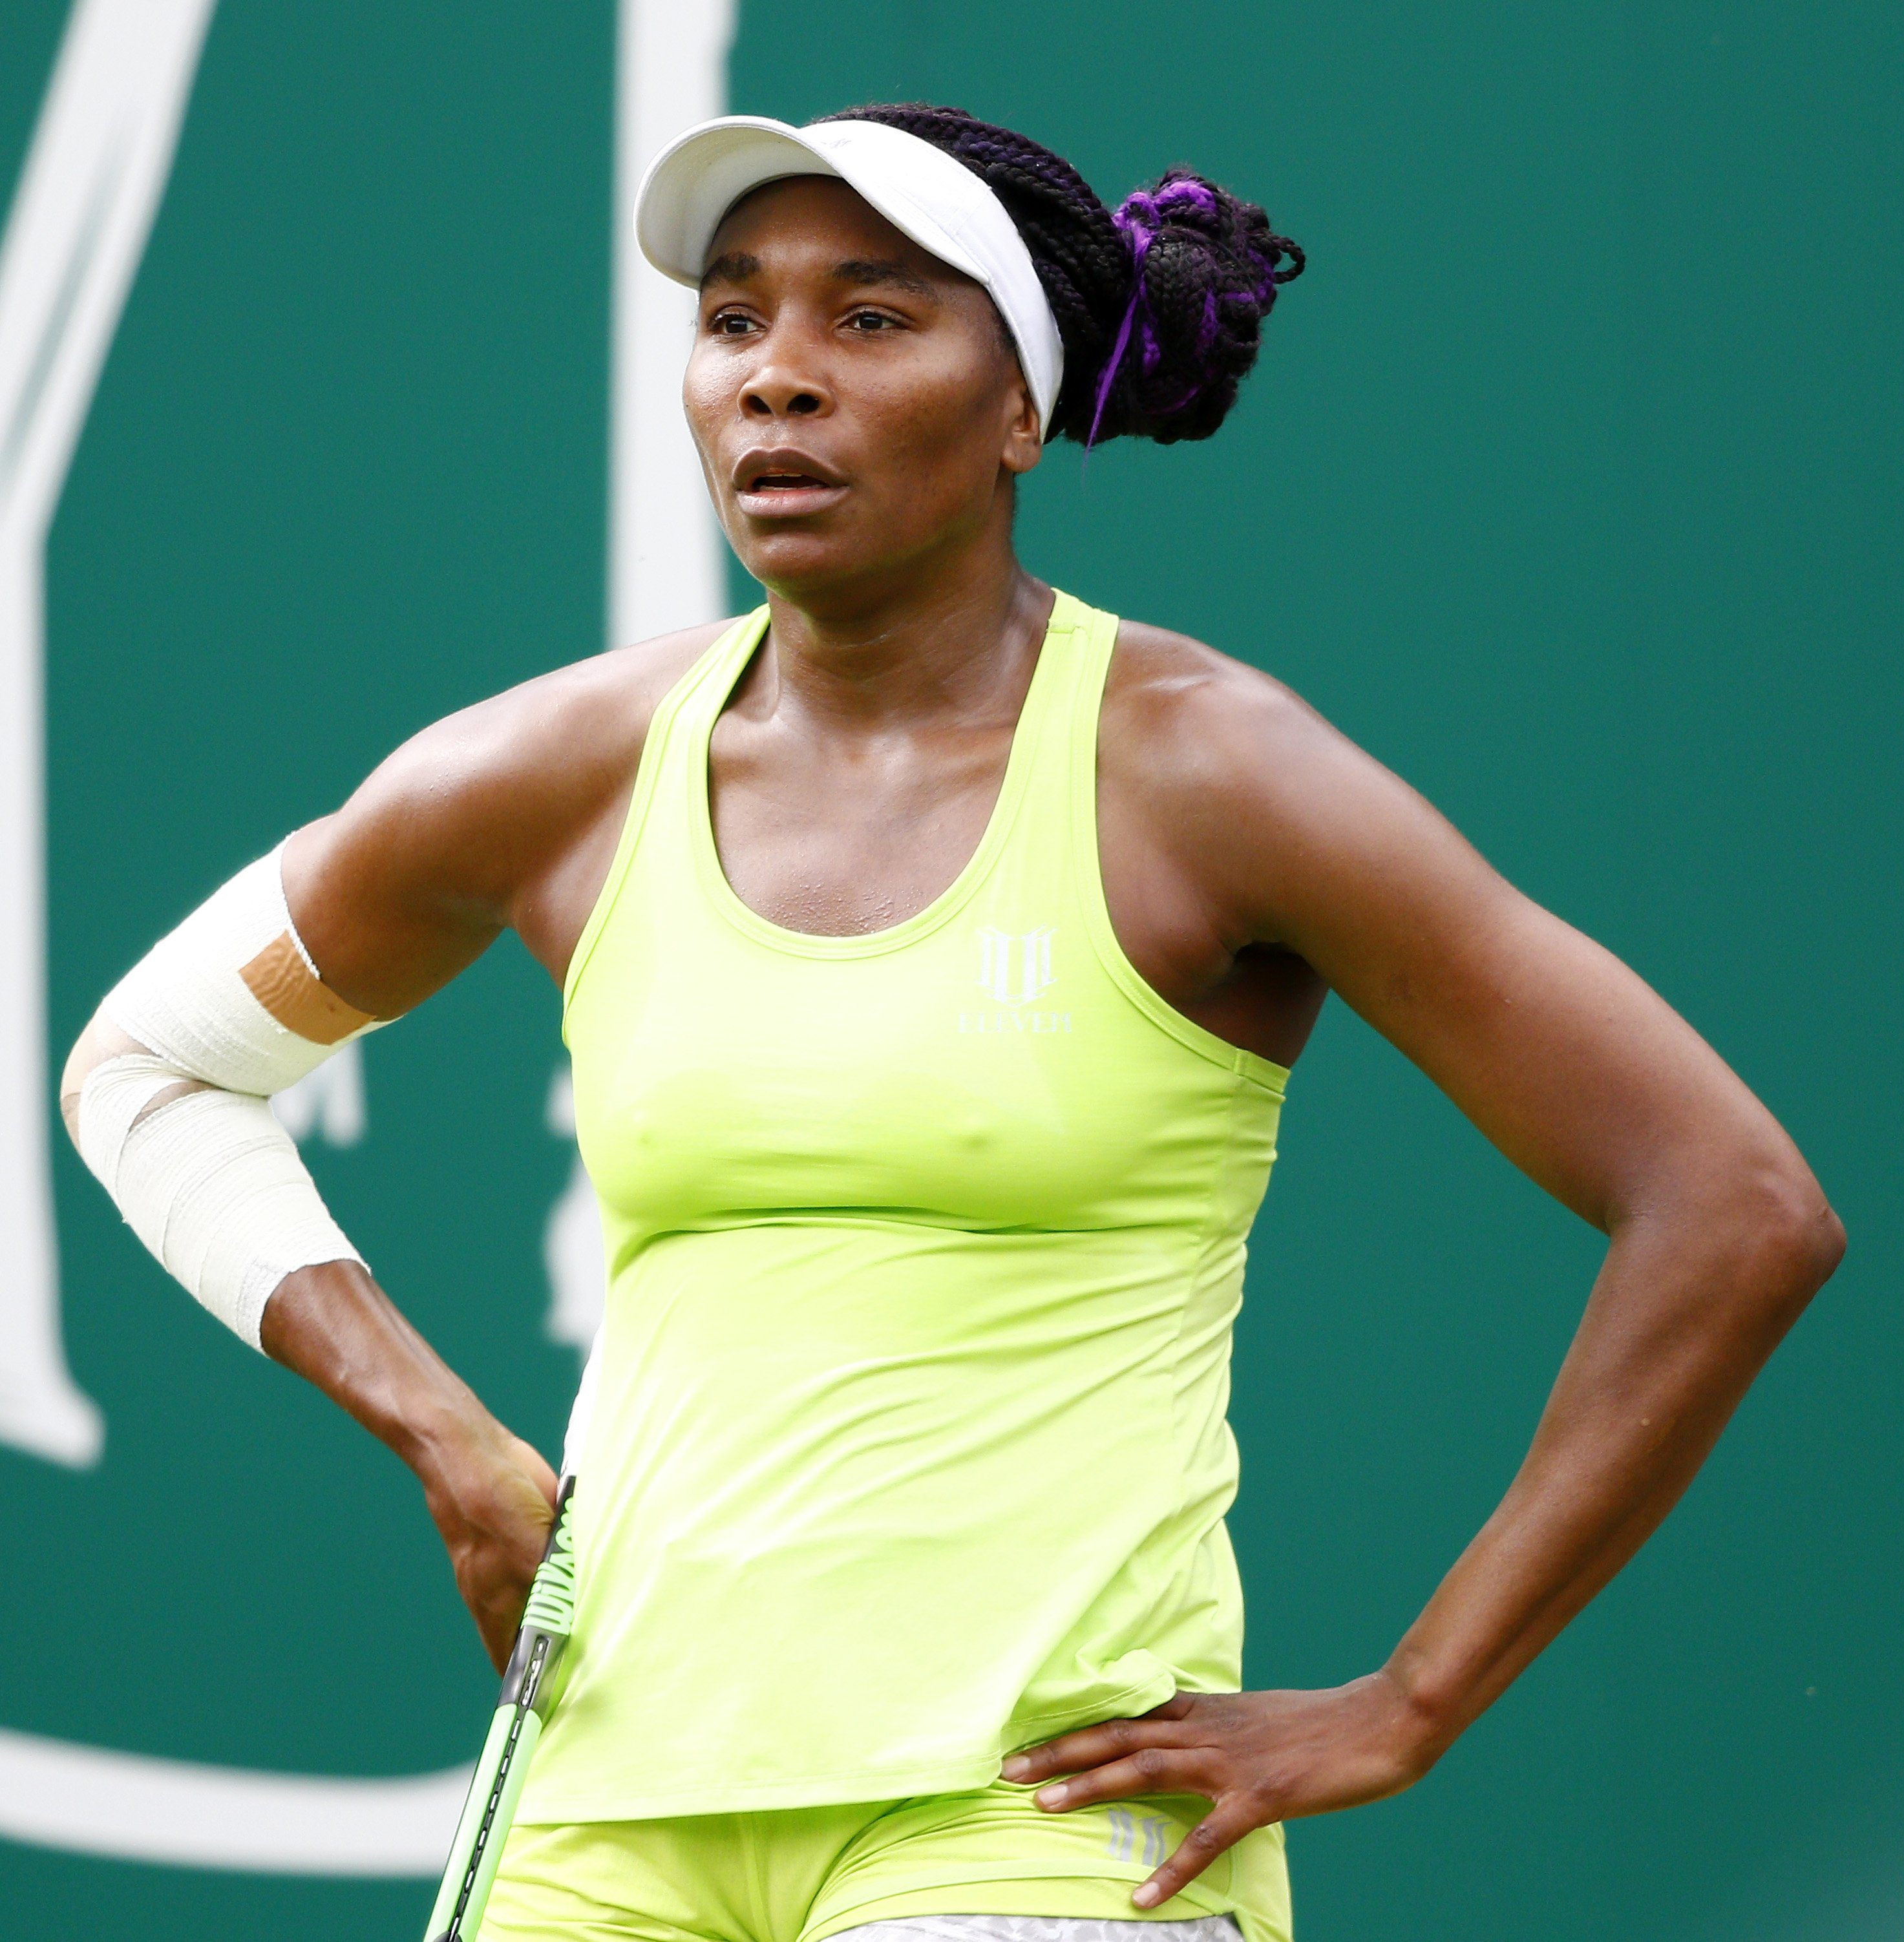 Venus Williams at the Nature Valley Classic in Birmingham, United Kingdom on June 21, 2019. | Photo: Getty Images